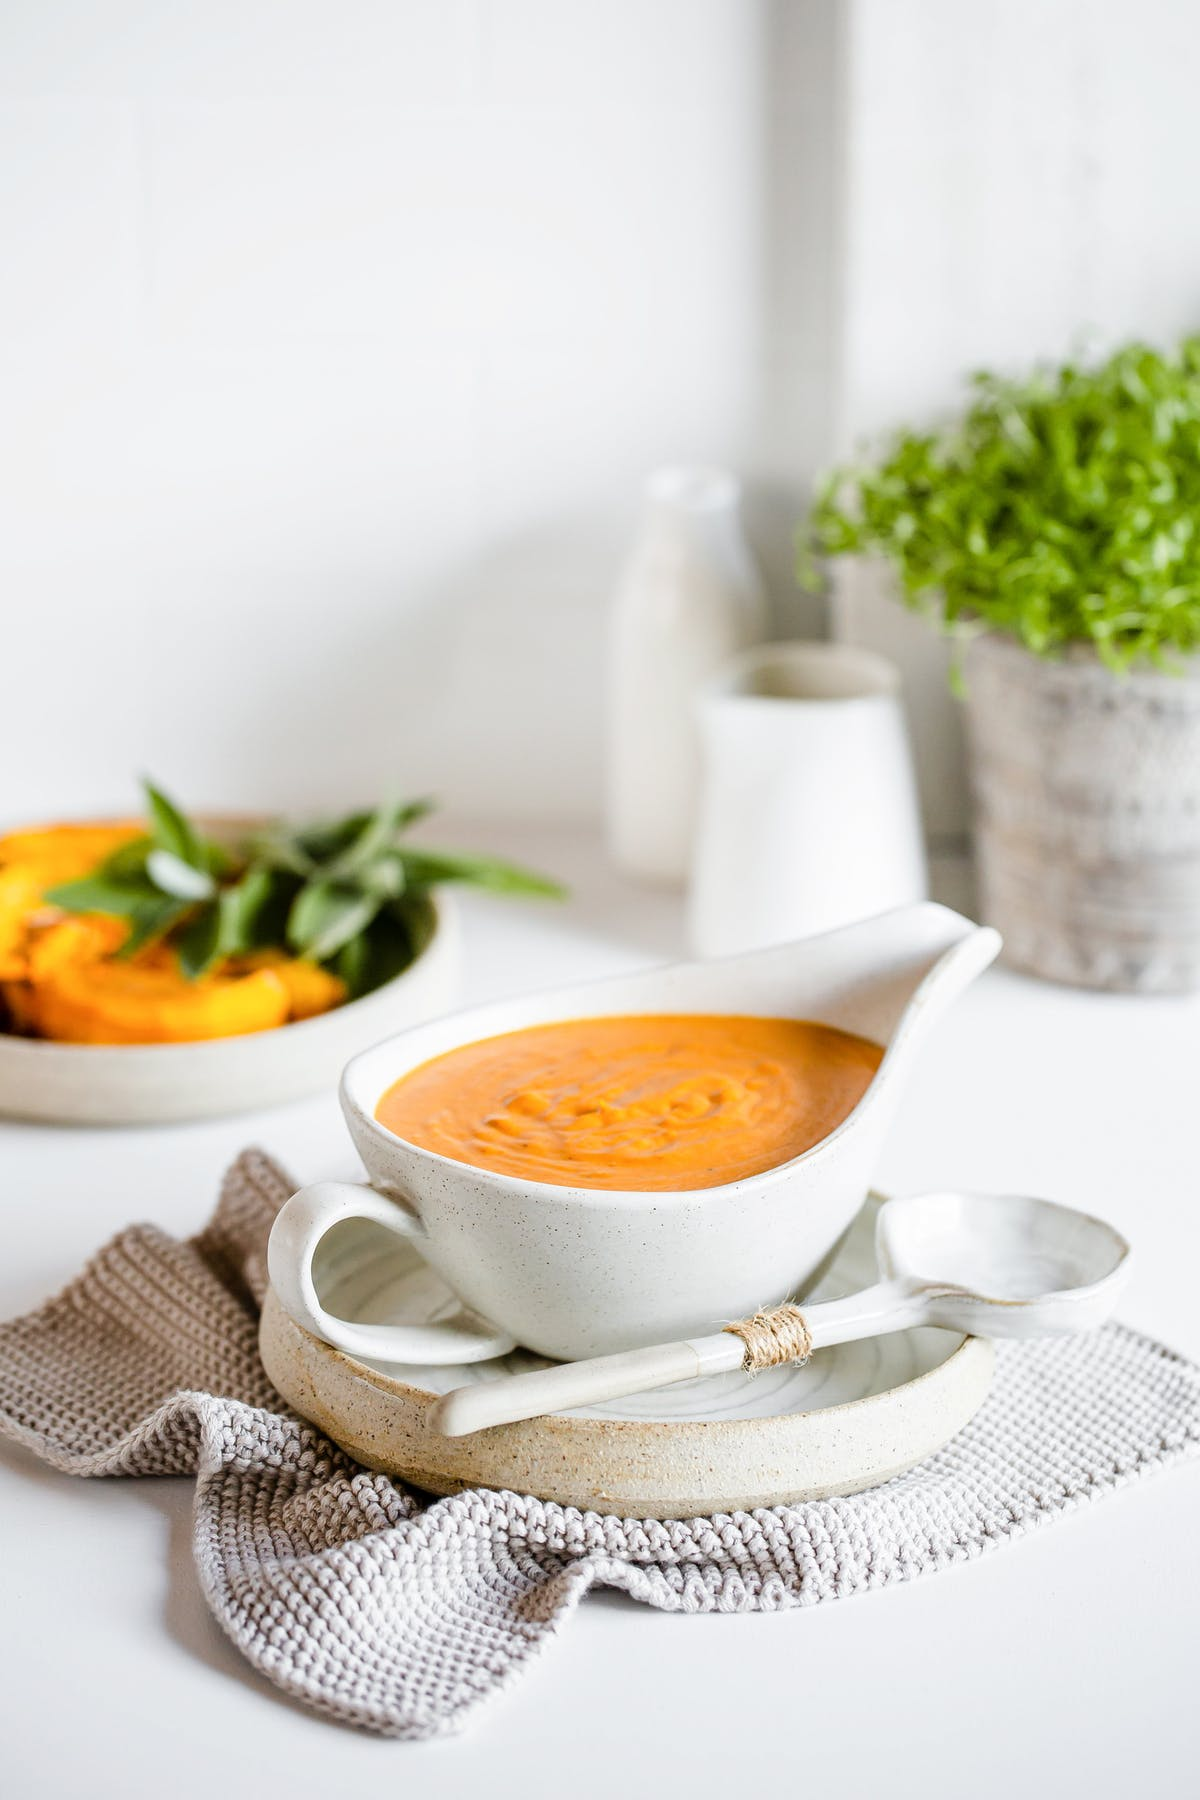 Roasted pumpkin chipotle cream sauce